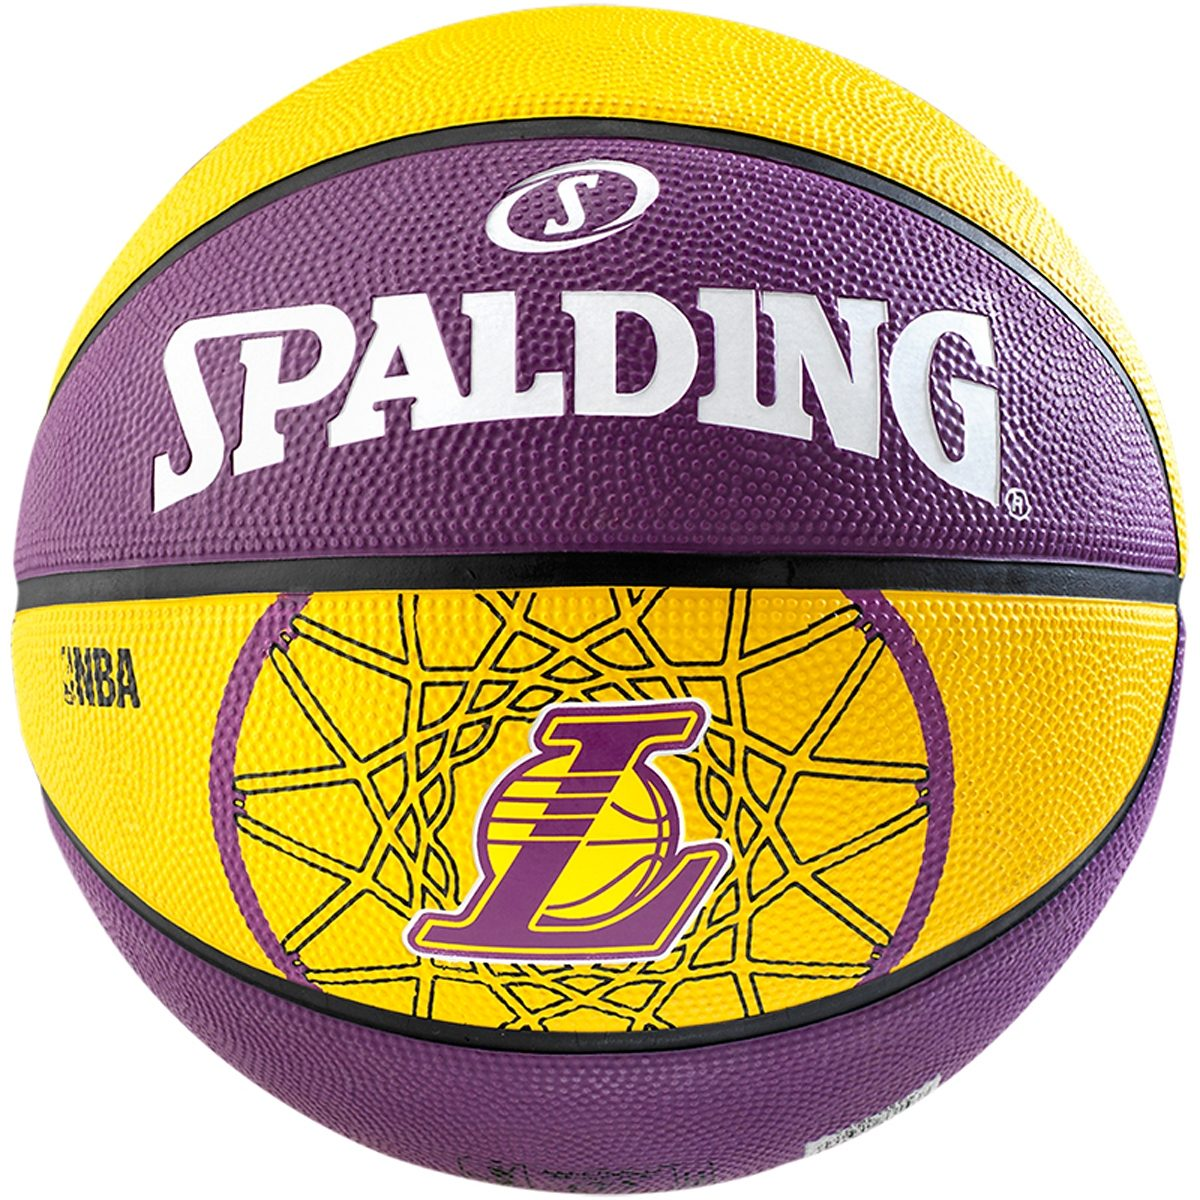 SPALDING Team Ball Los Angeles Lakers Basketball